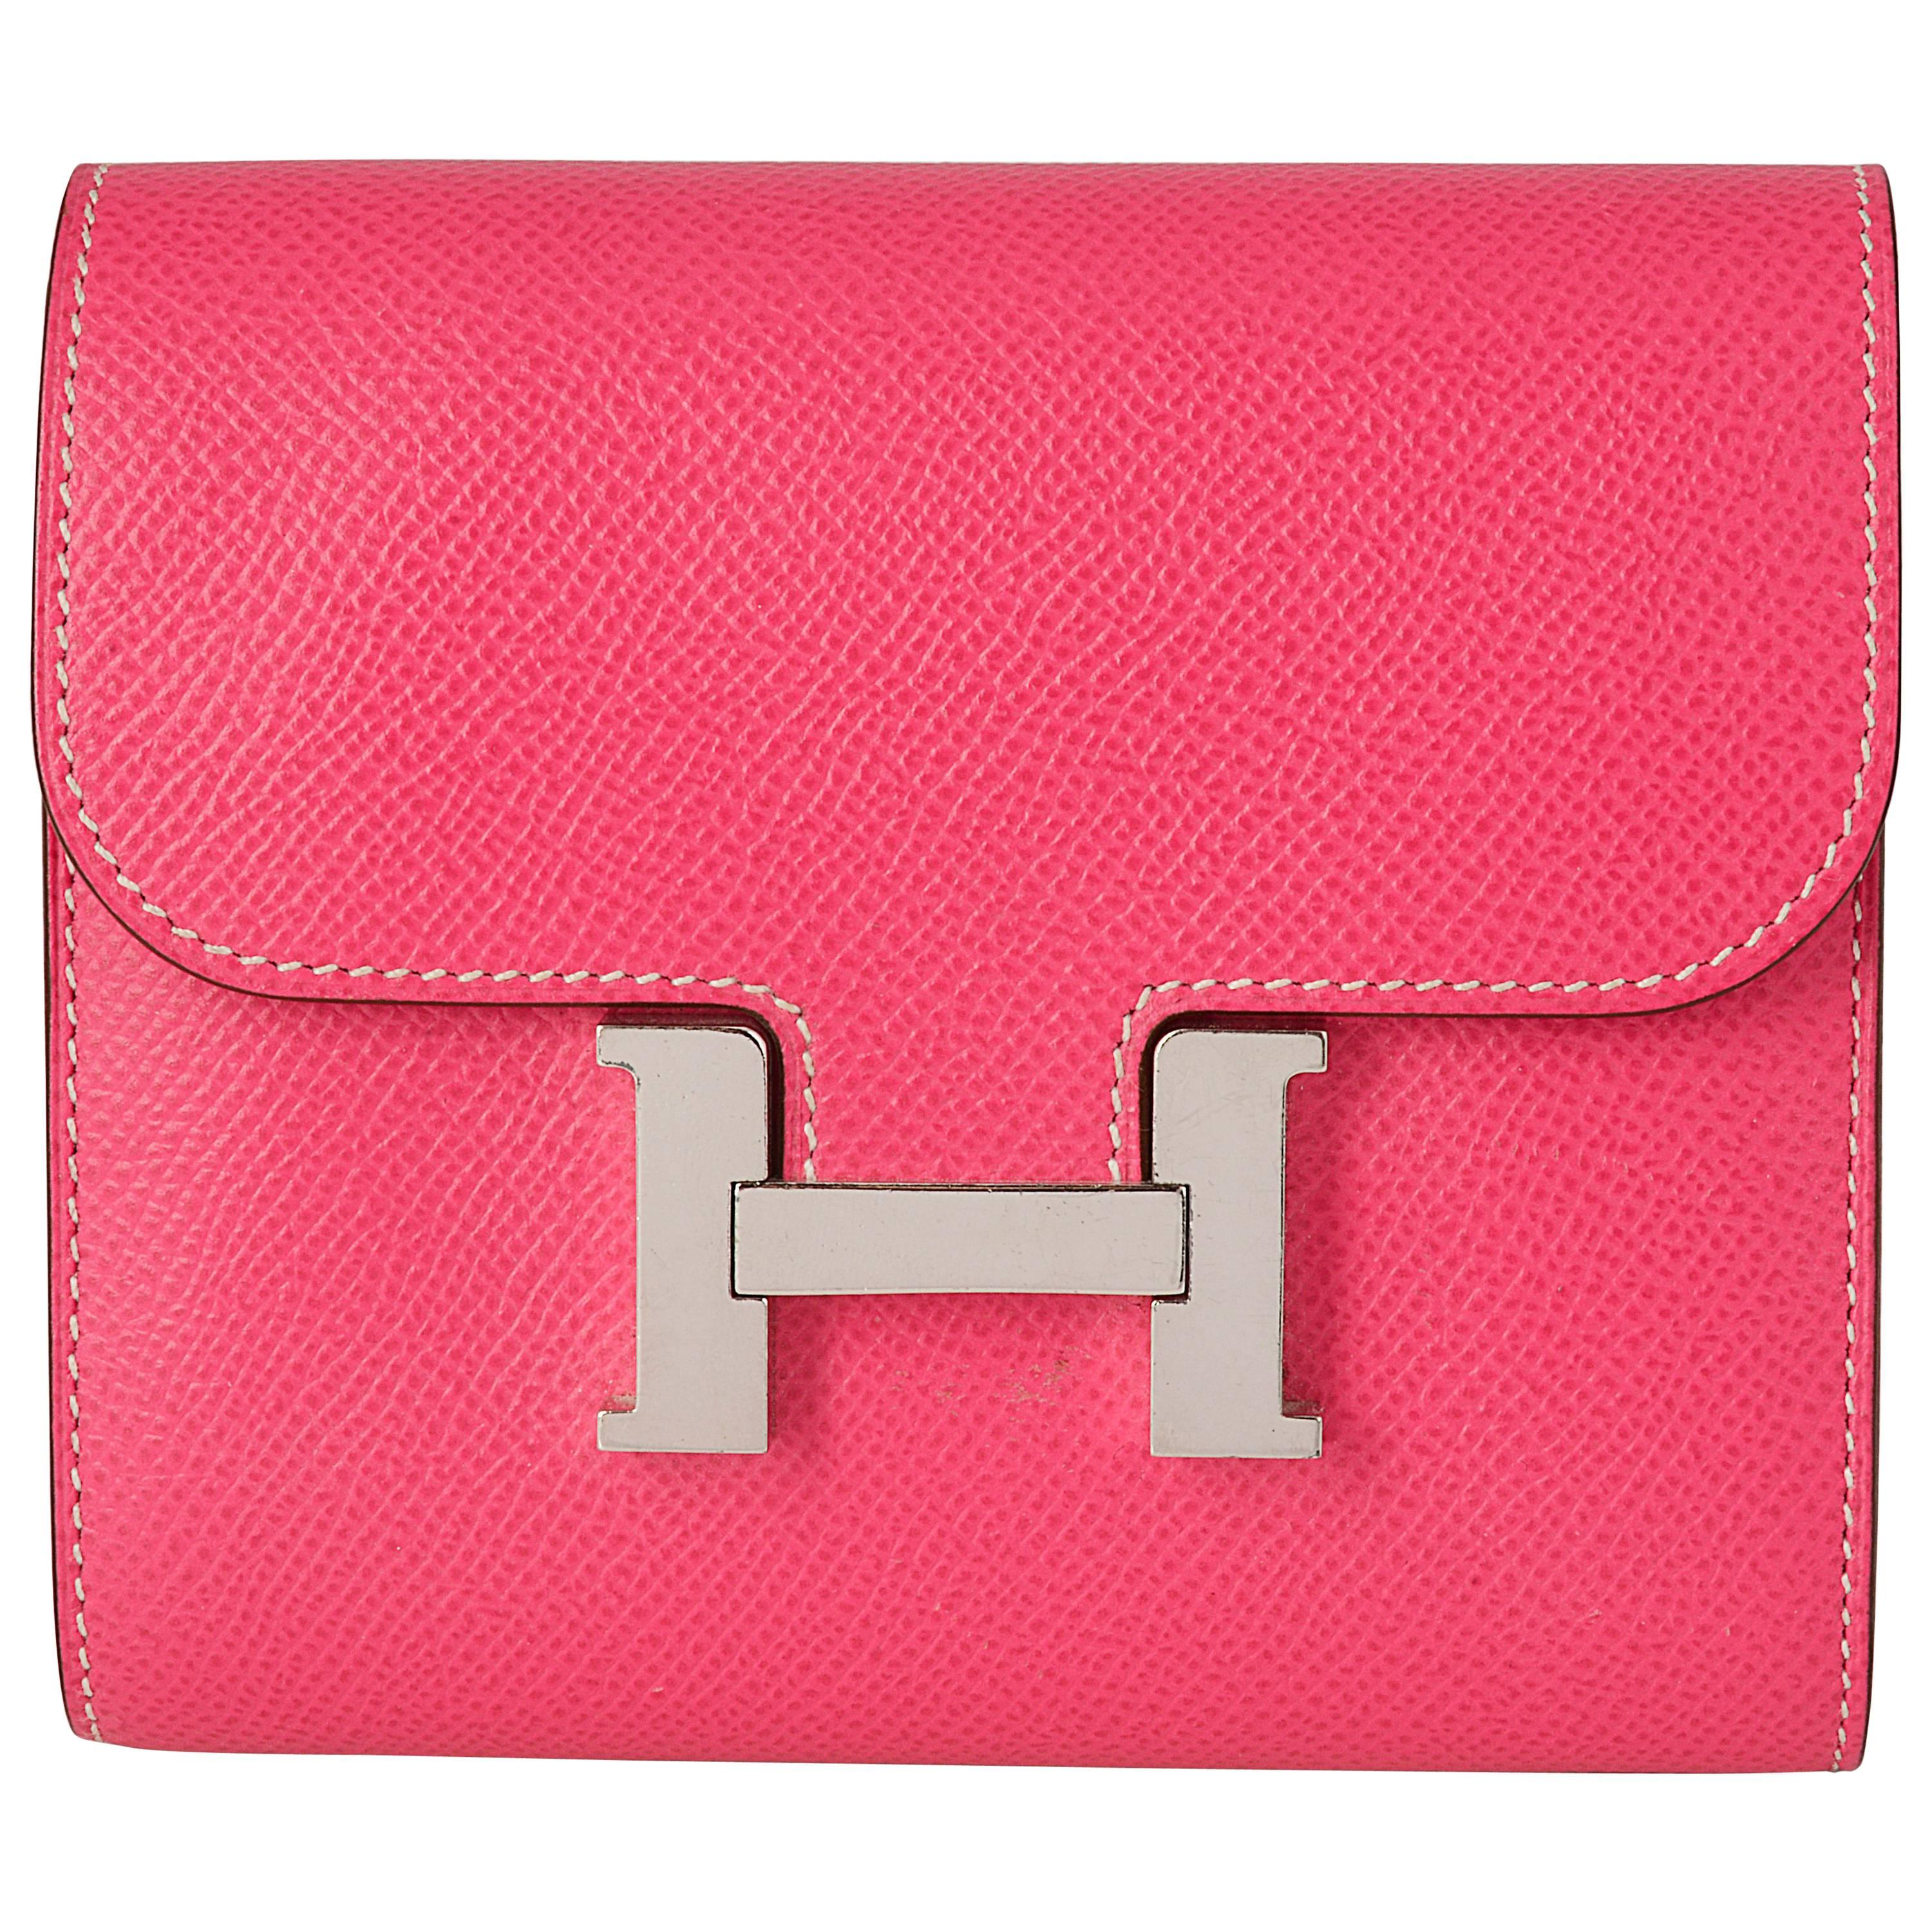 e8d554dc4f66 Hermes Rose Tyrien Bright Pink Chevre Mysore Leather Kelly Longue Wallet  For Sale at 1stdibs